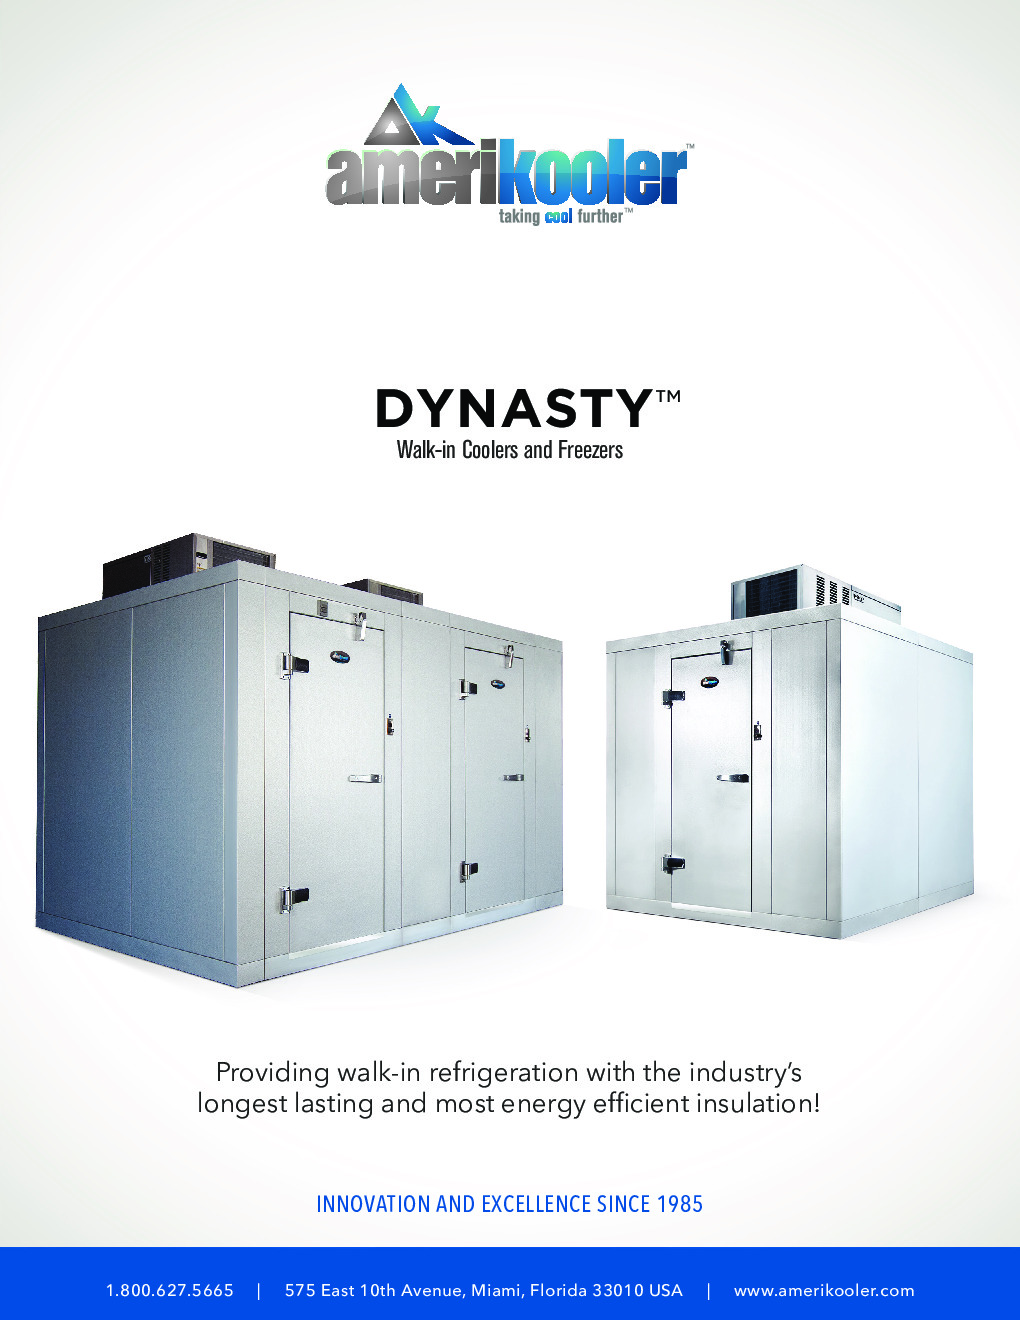 AmeriKooler DW071477N-7/7-RM 7' X 14' Walk-In Cooler, 7' L Cooler without Floor and 7' L Freezer, Remote